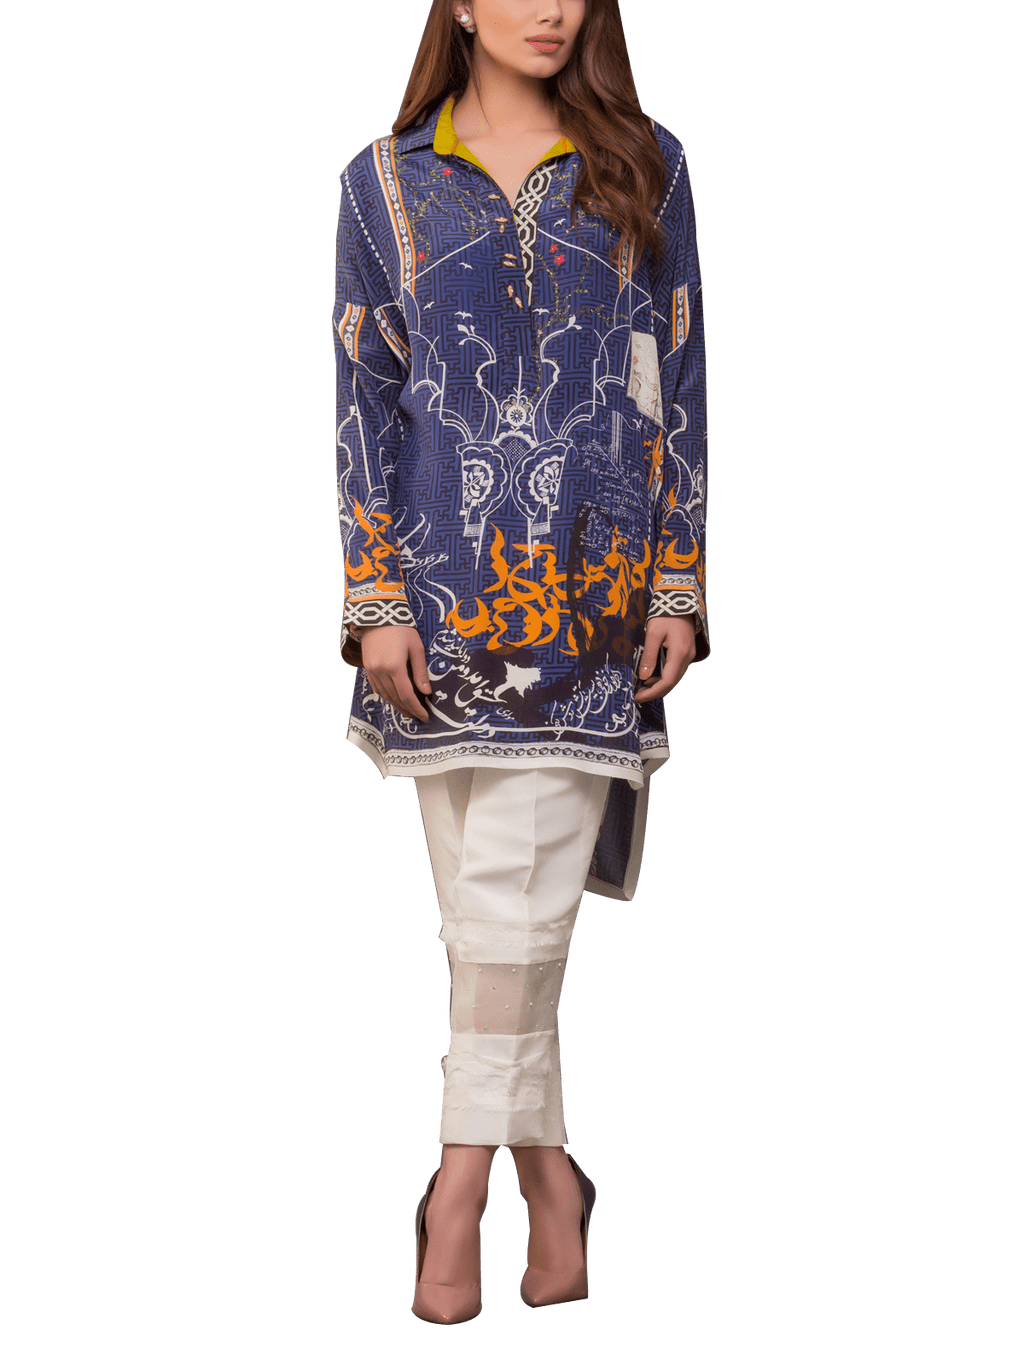 Sania Maskatiya - Digitally Printed Alpha Numeric Print Charmeuse Shirt With Pants